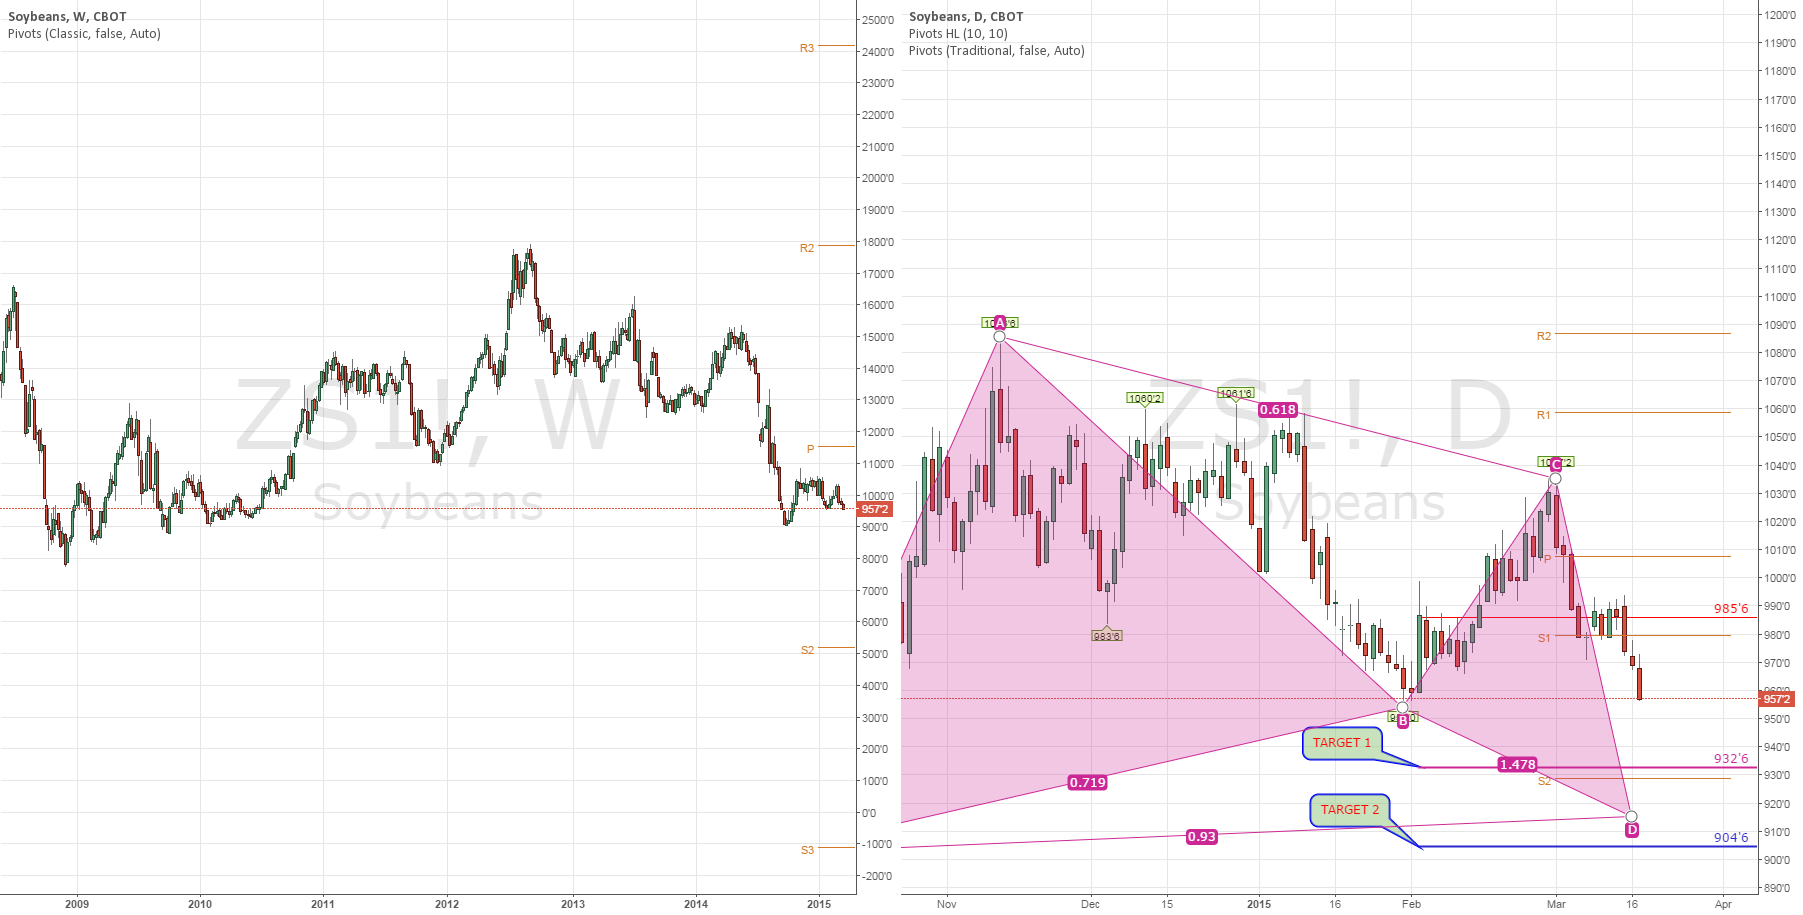 SOYBEANS: Weekly & Daily